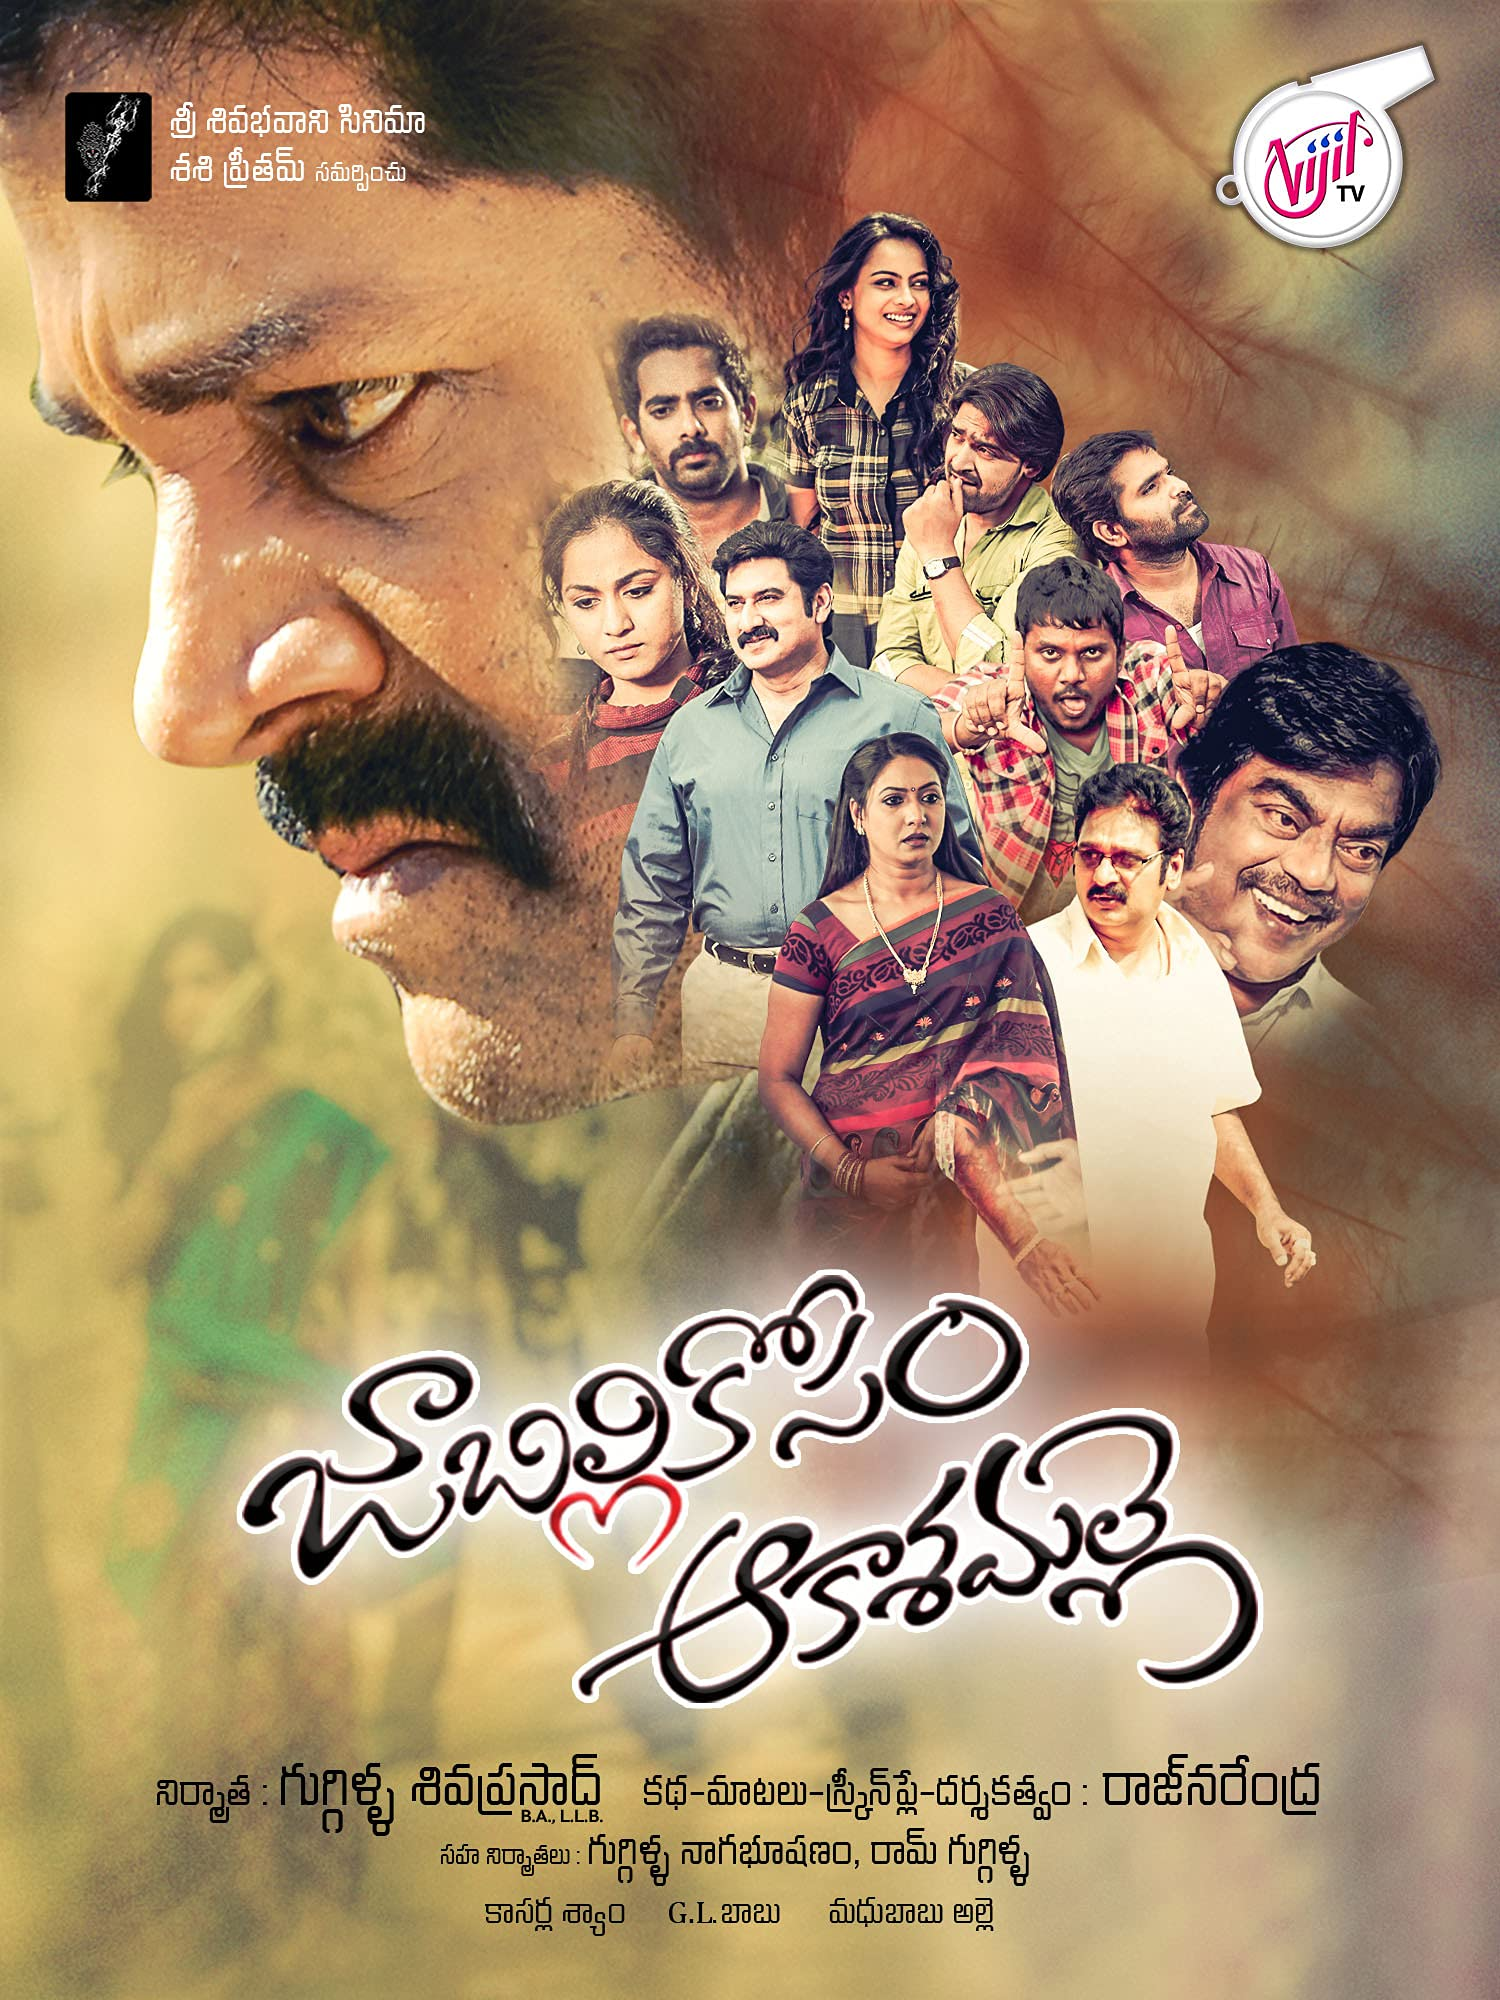 Jabilli Kosam Akasamalle 2021 Telugu 1080p HDRip ESubs 2.43GB Download